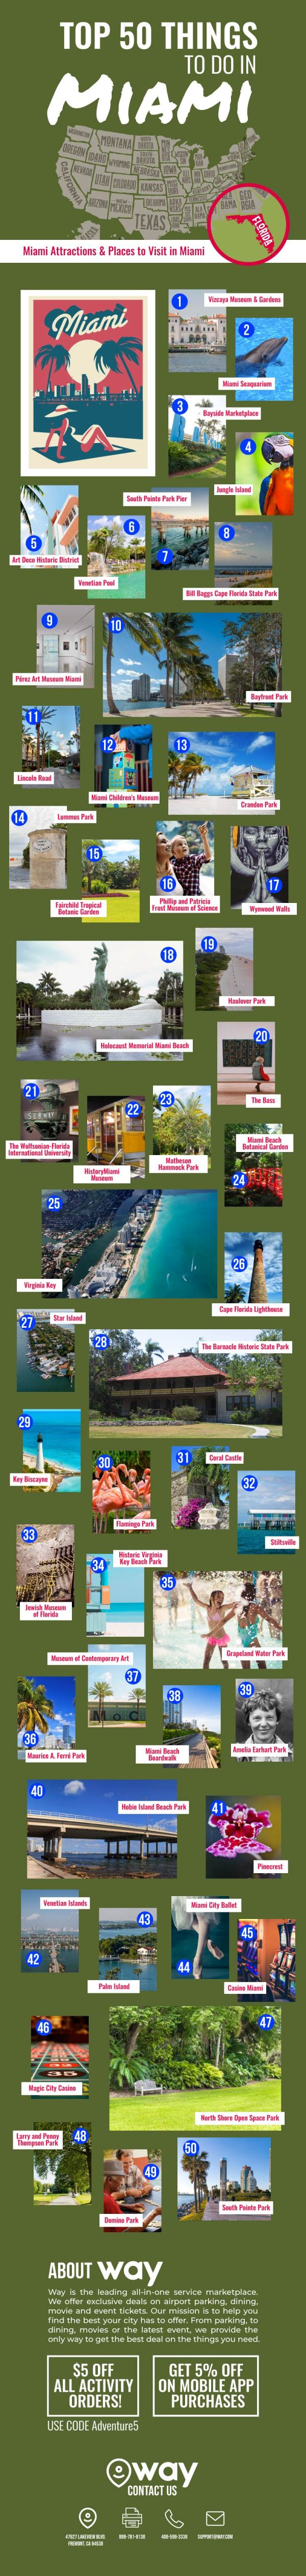 Top-50-Things- to-Do-in-Miami-infographic-lkrllc